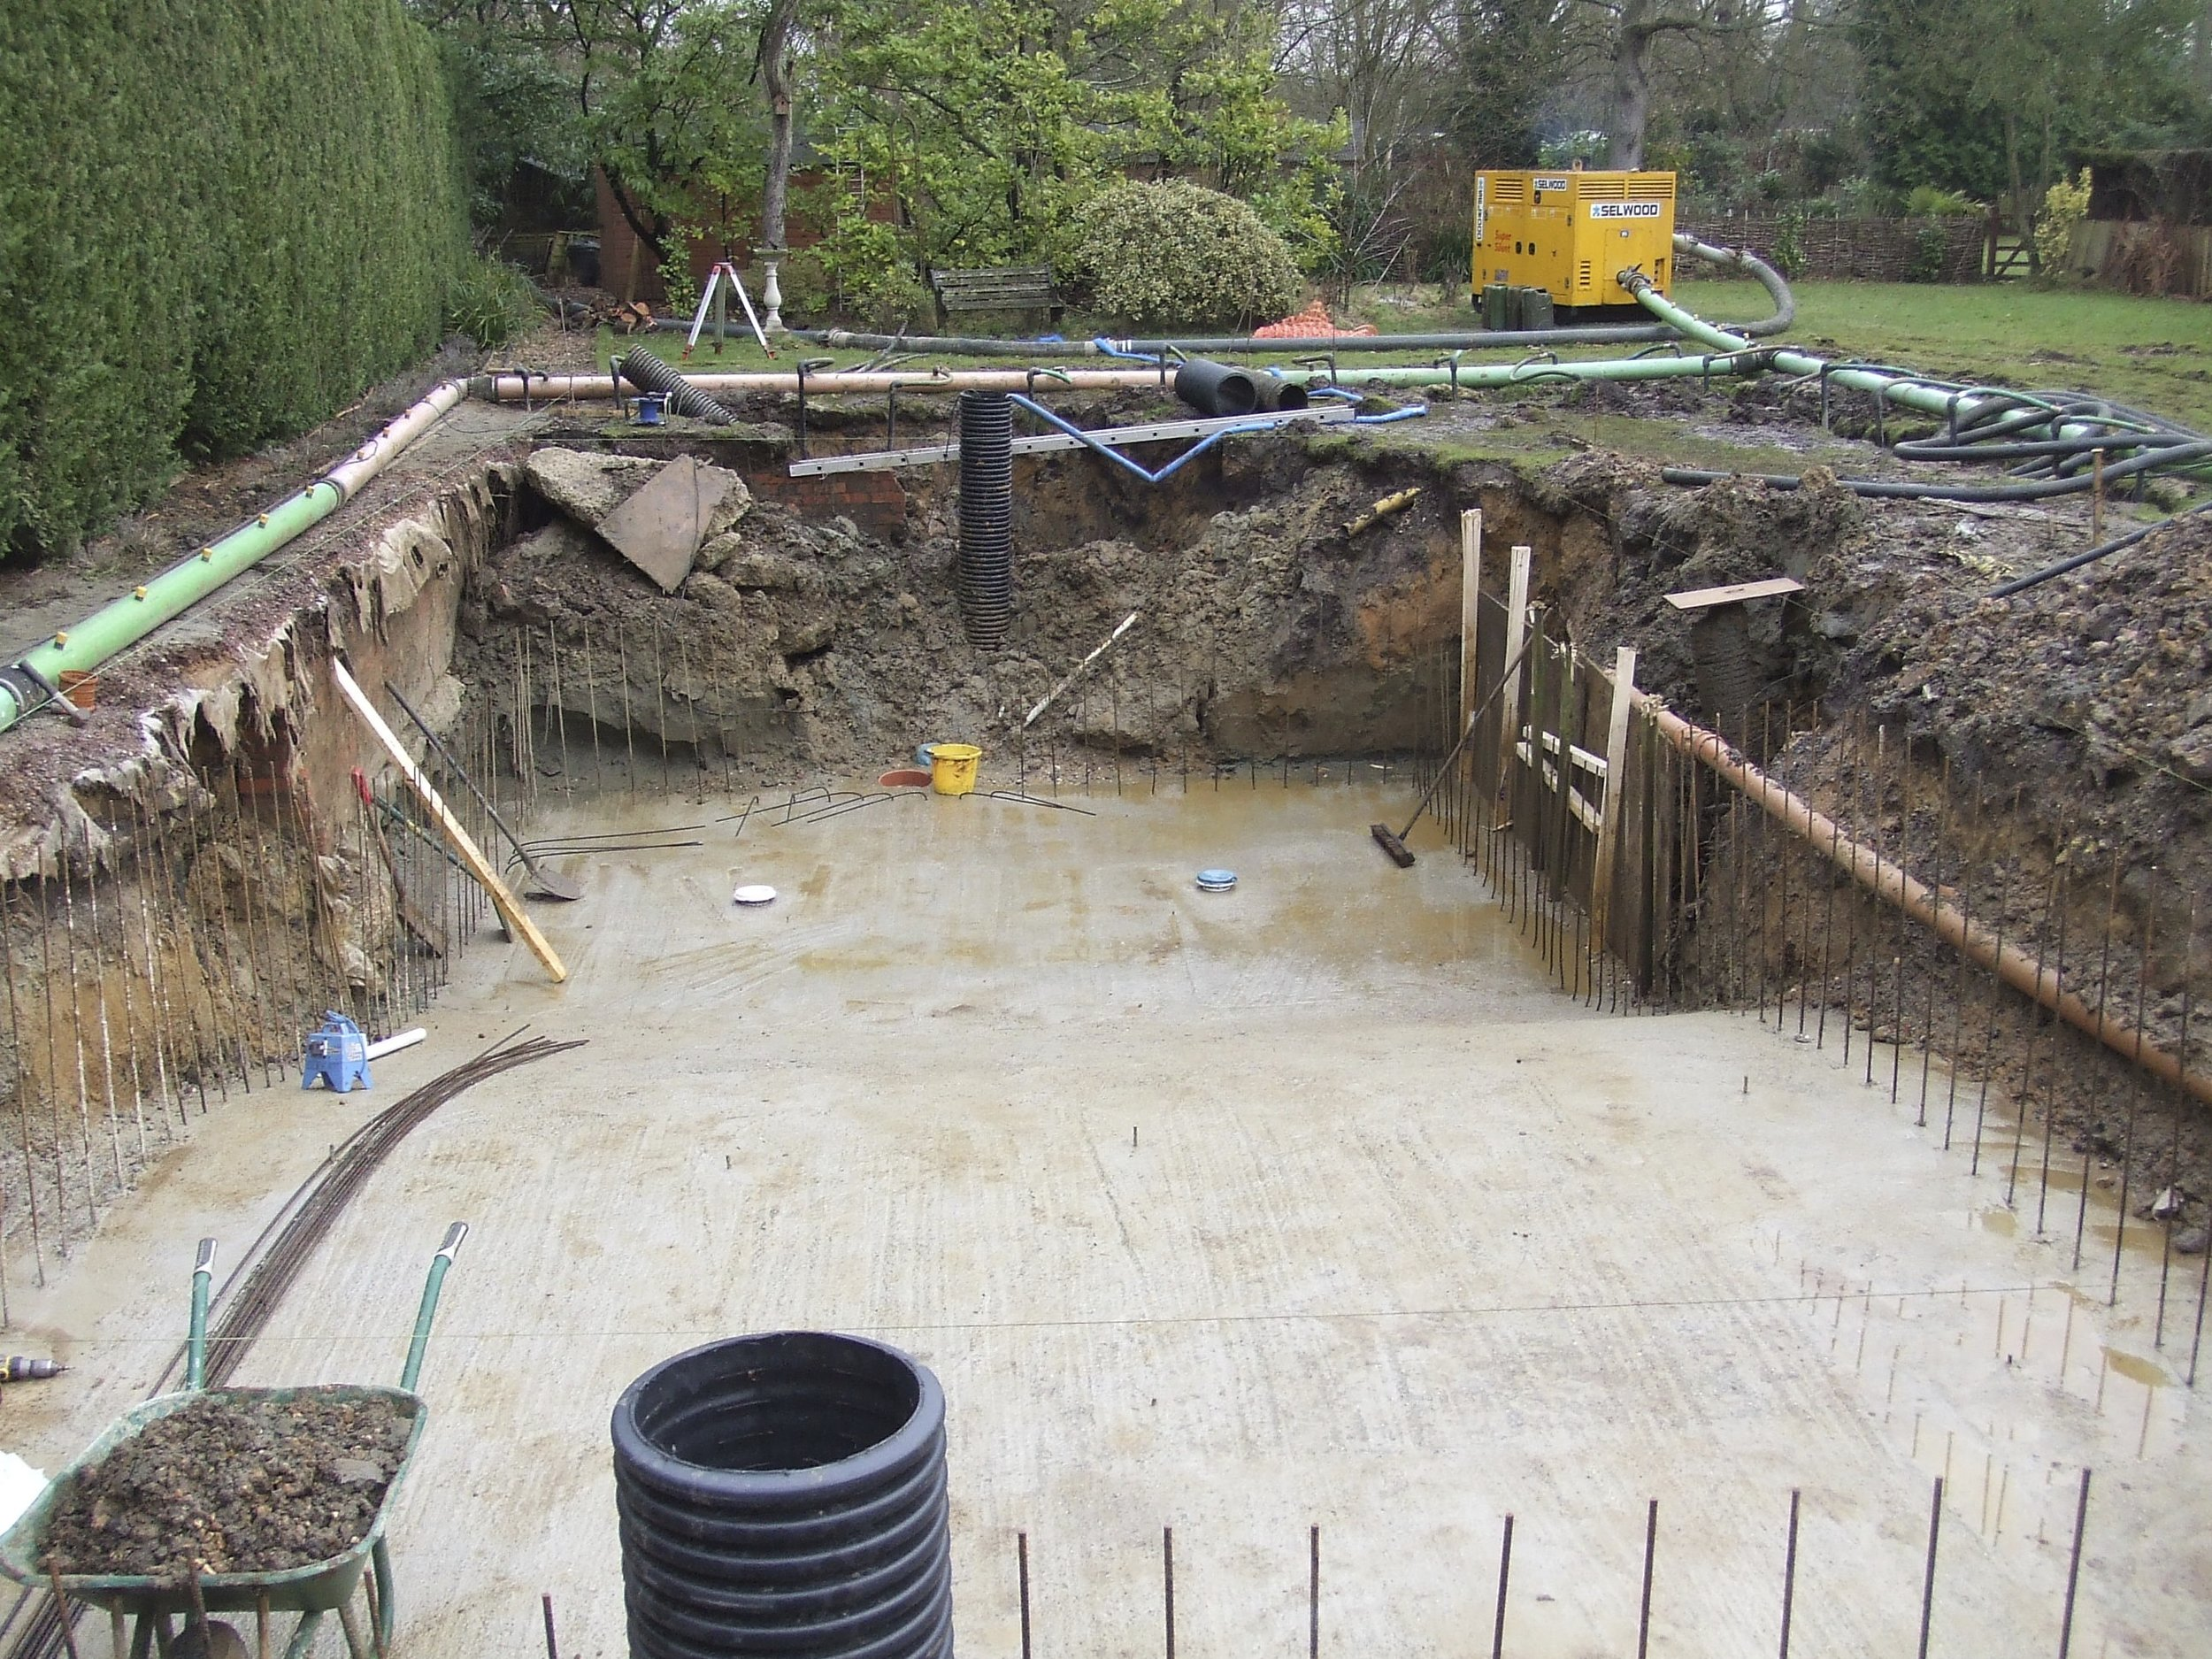 - 2.2 metres deep and we came across an underground stream on this project. Just as well the shell is reinforced with a double layer of steel mesh and shotcrete to a thickness of 200mm and is very well insulated.